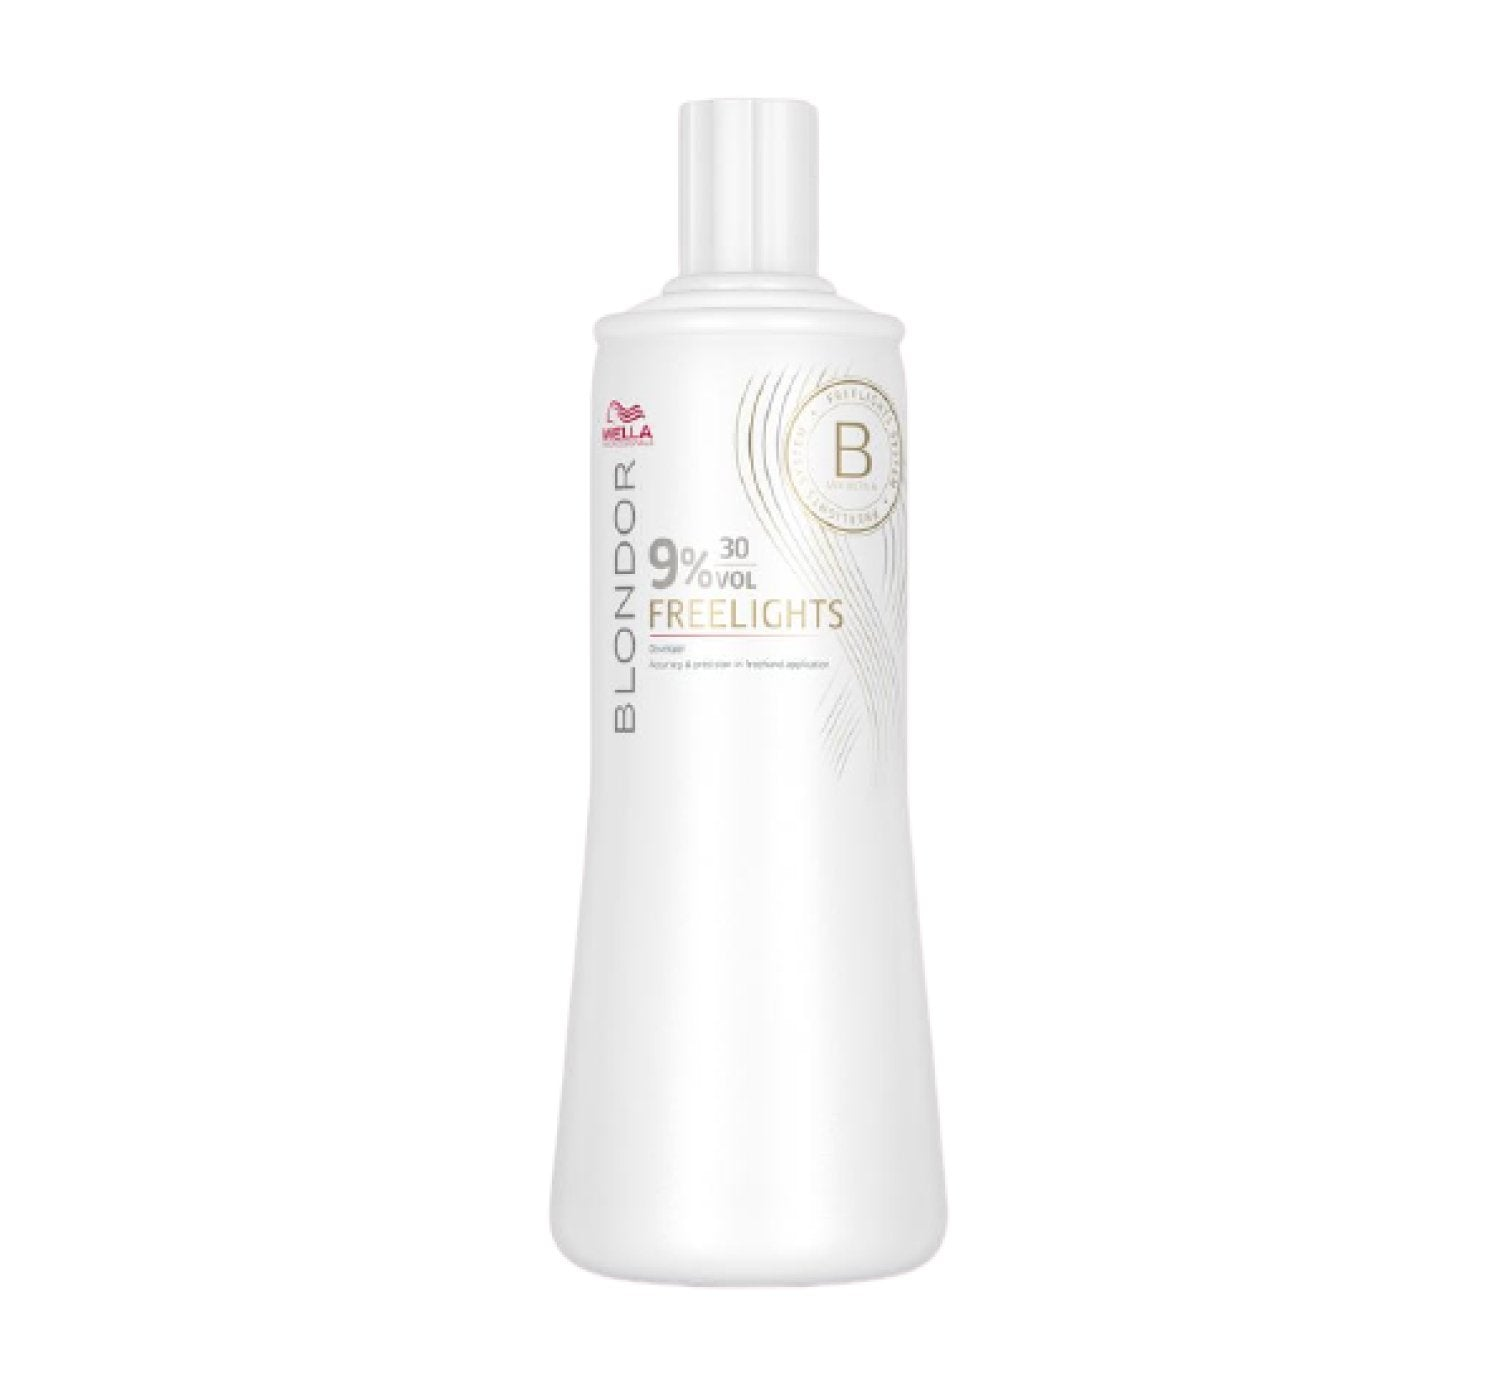 Wella Freelights Developer 9% 30vol 1000ml